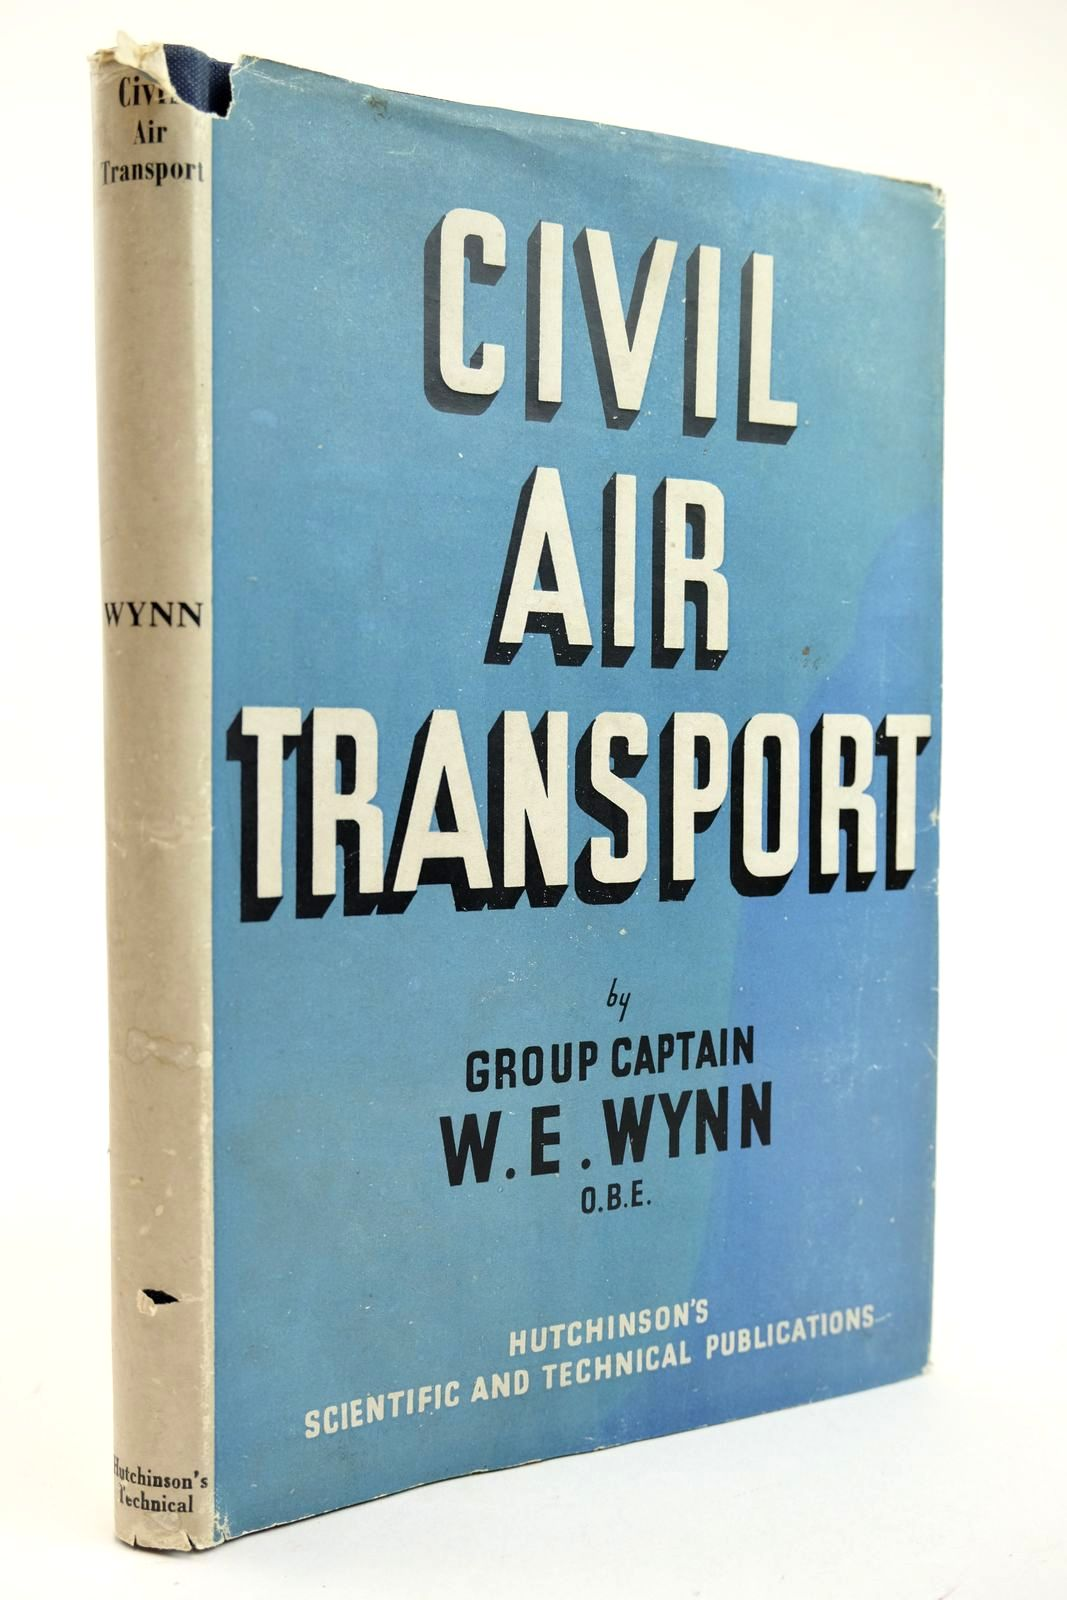 Photo of CIVIL AIR TRANSPORT written by Wynn, W.E. published by Hutchinson's Scientific And Technical Publications (STOCK CODE: 2132271)  for sale by Stella & Rose's Books